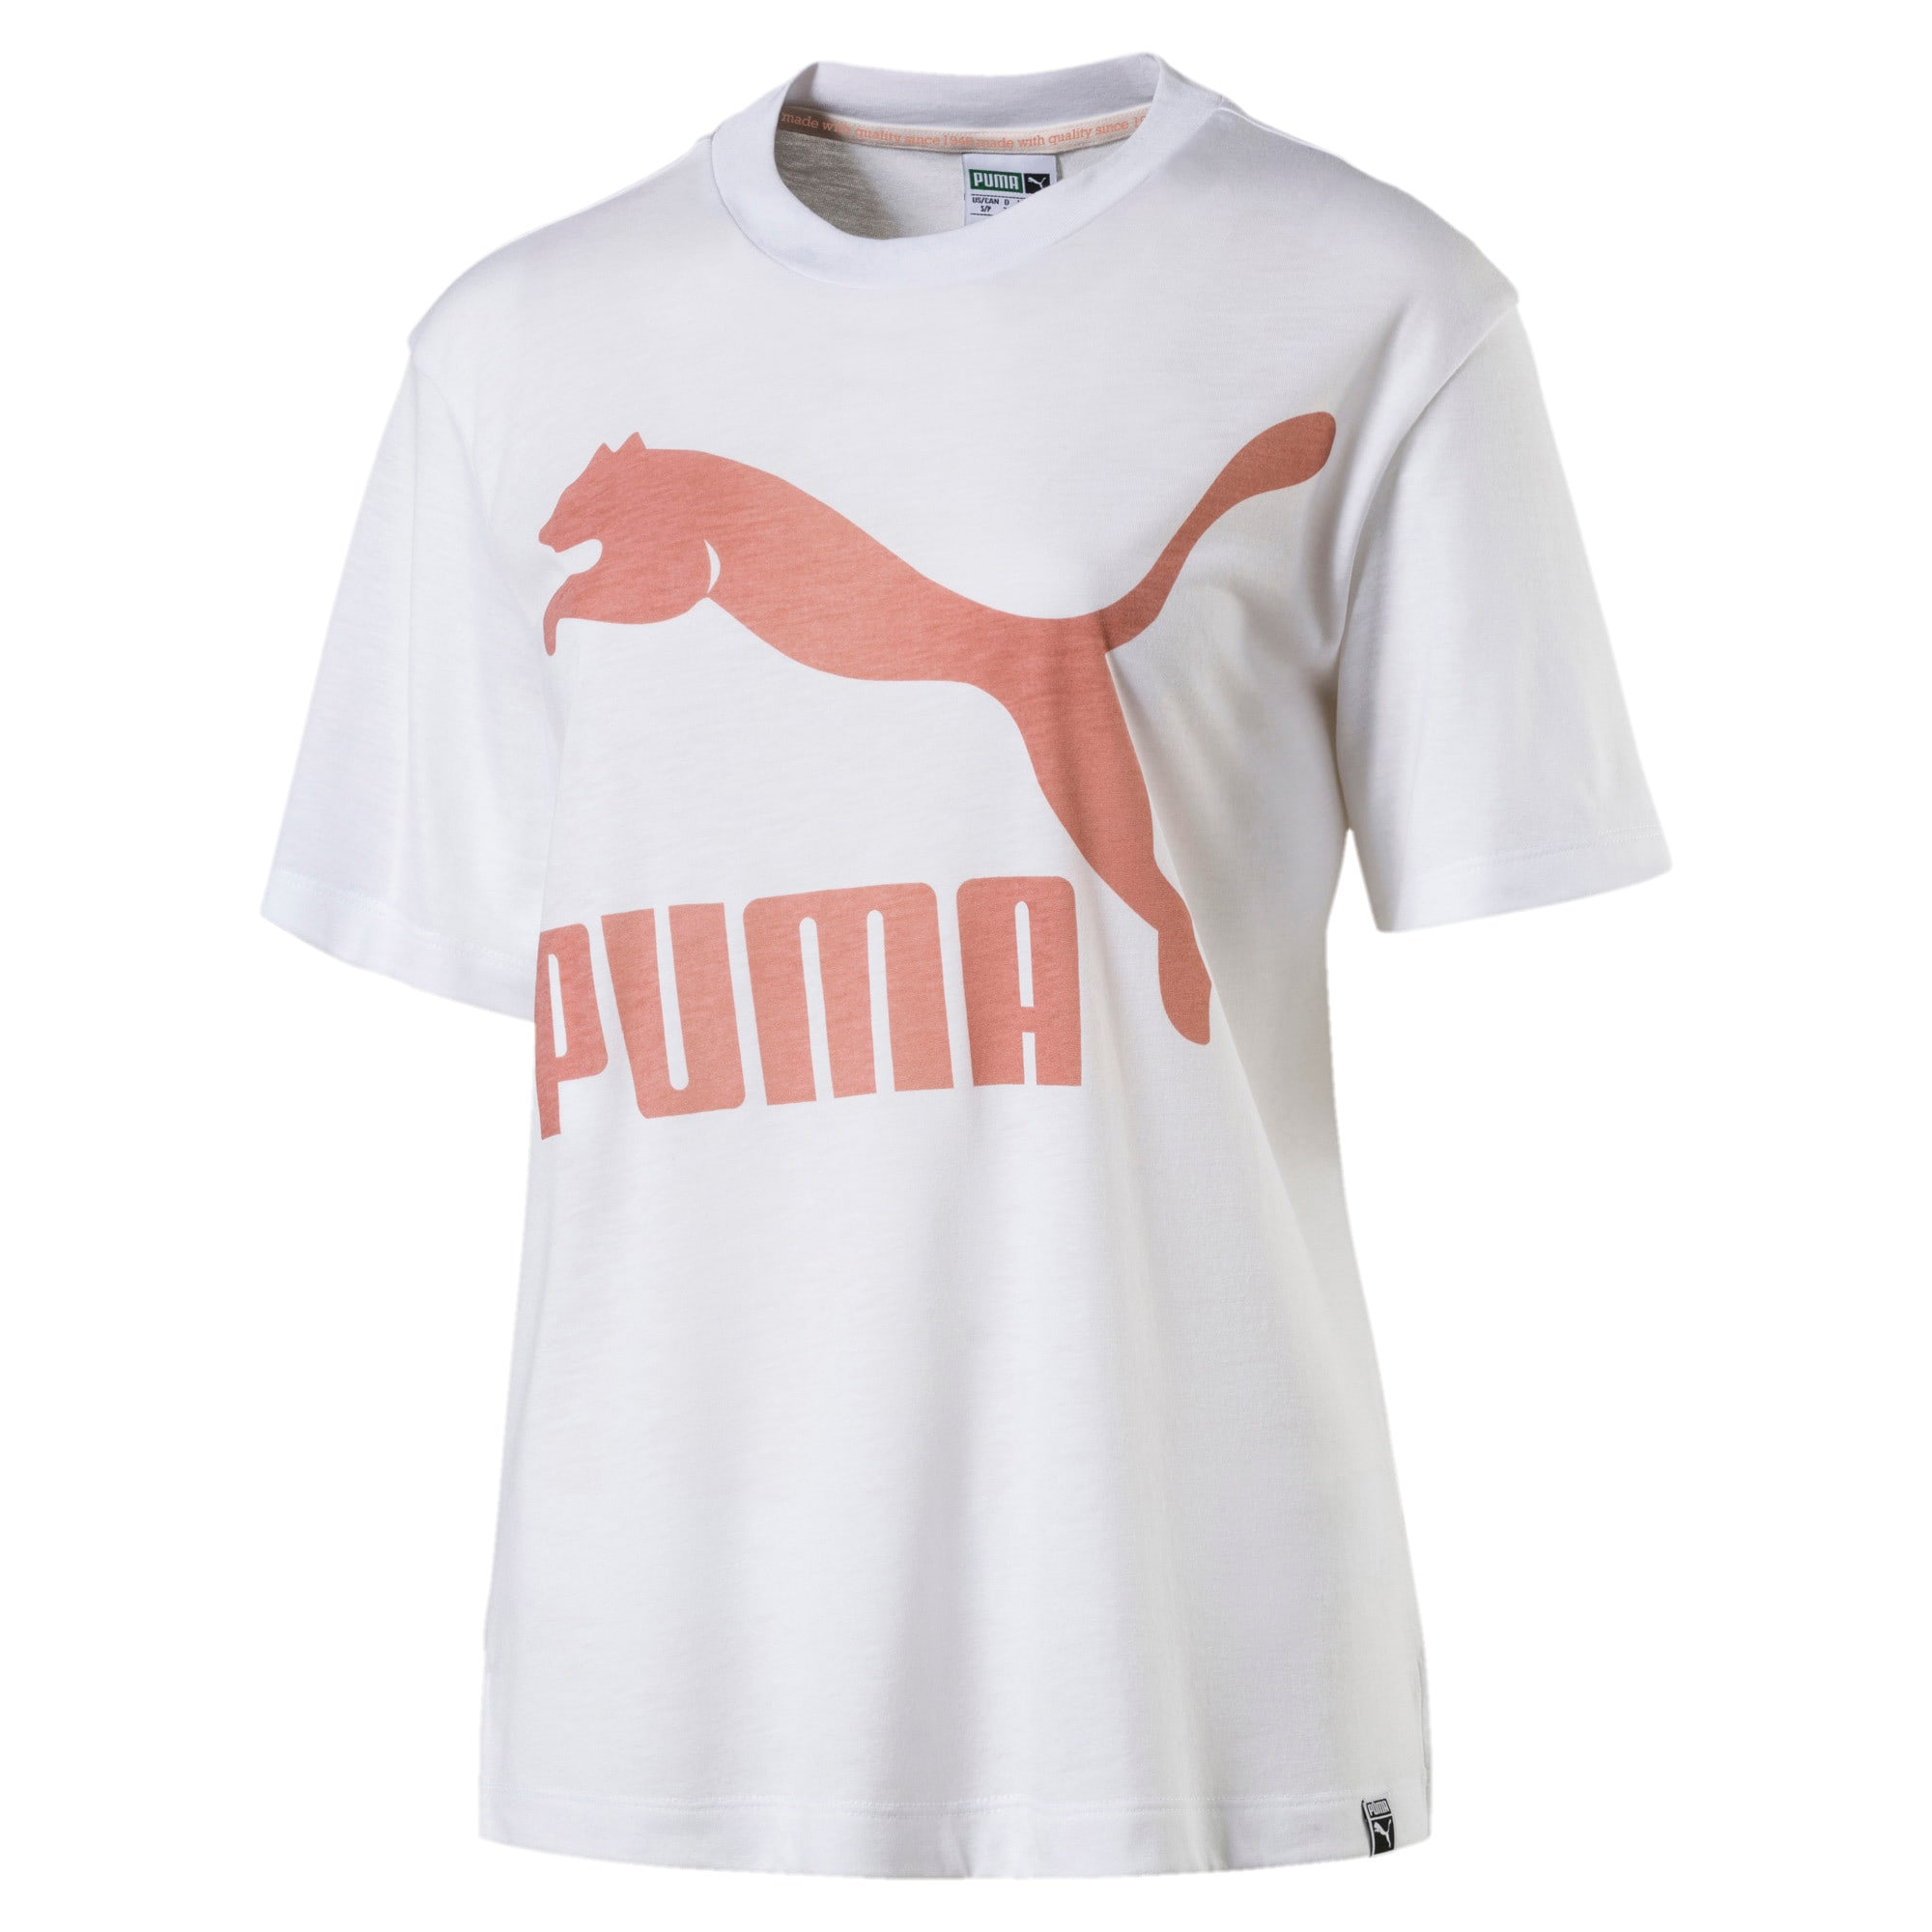 Thumbnail 1 of Classics Logo Women's Short Sleeve T-Shirt, Puma White-5, medium-IND